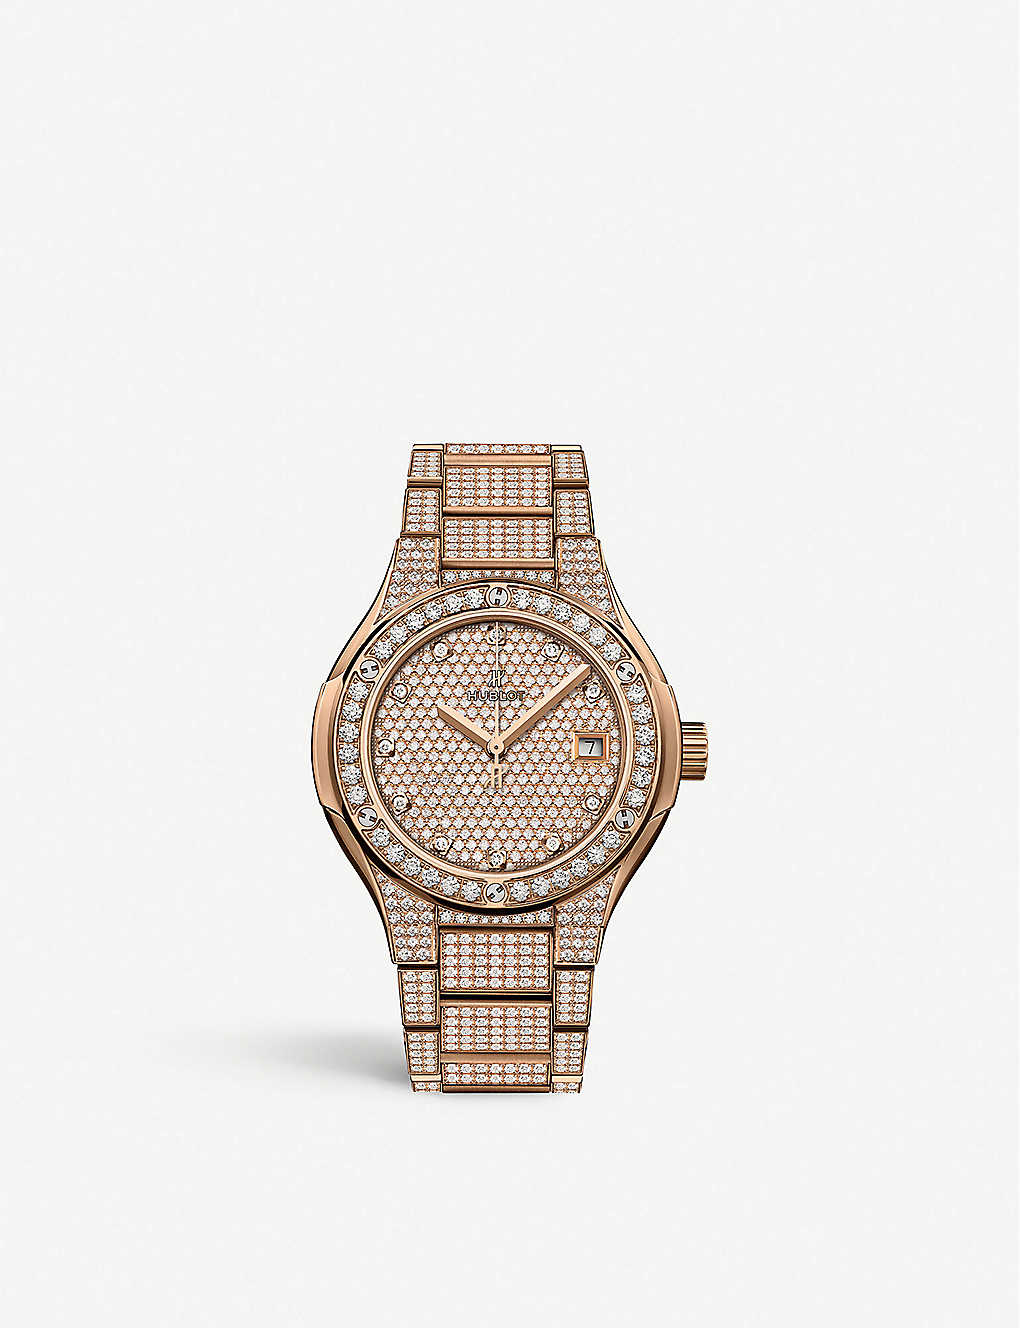 HUBLOT: 585.OX.9000.OX.3604 Classic Fusion 18ct rose-gold and diamond watch